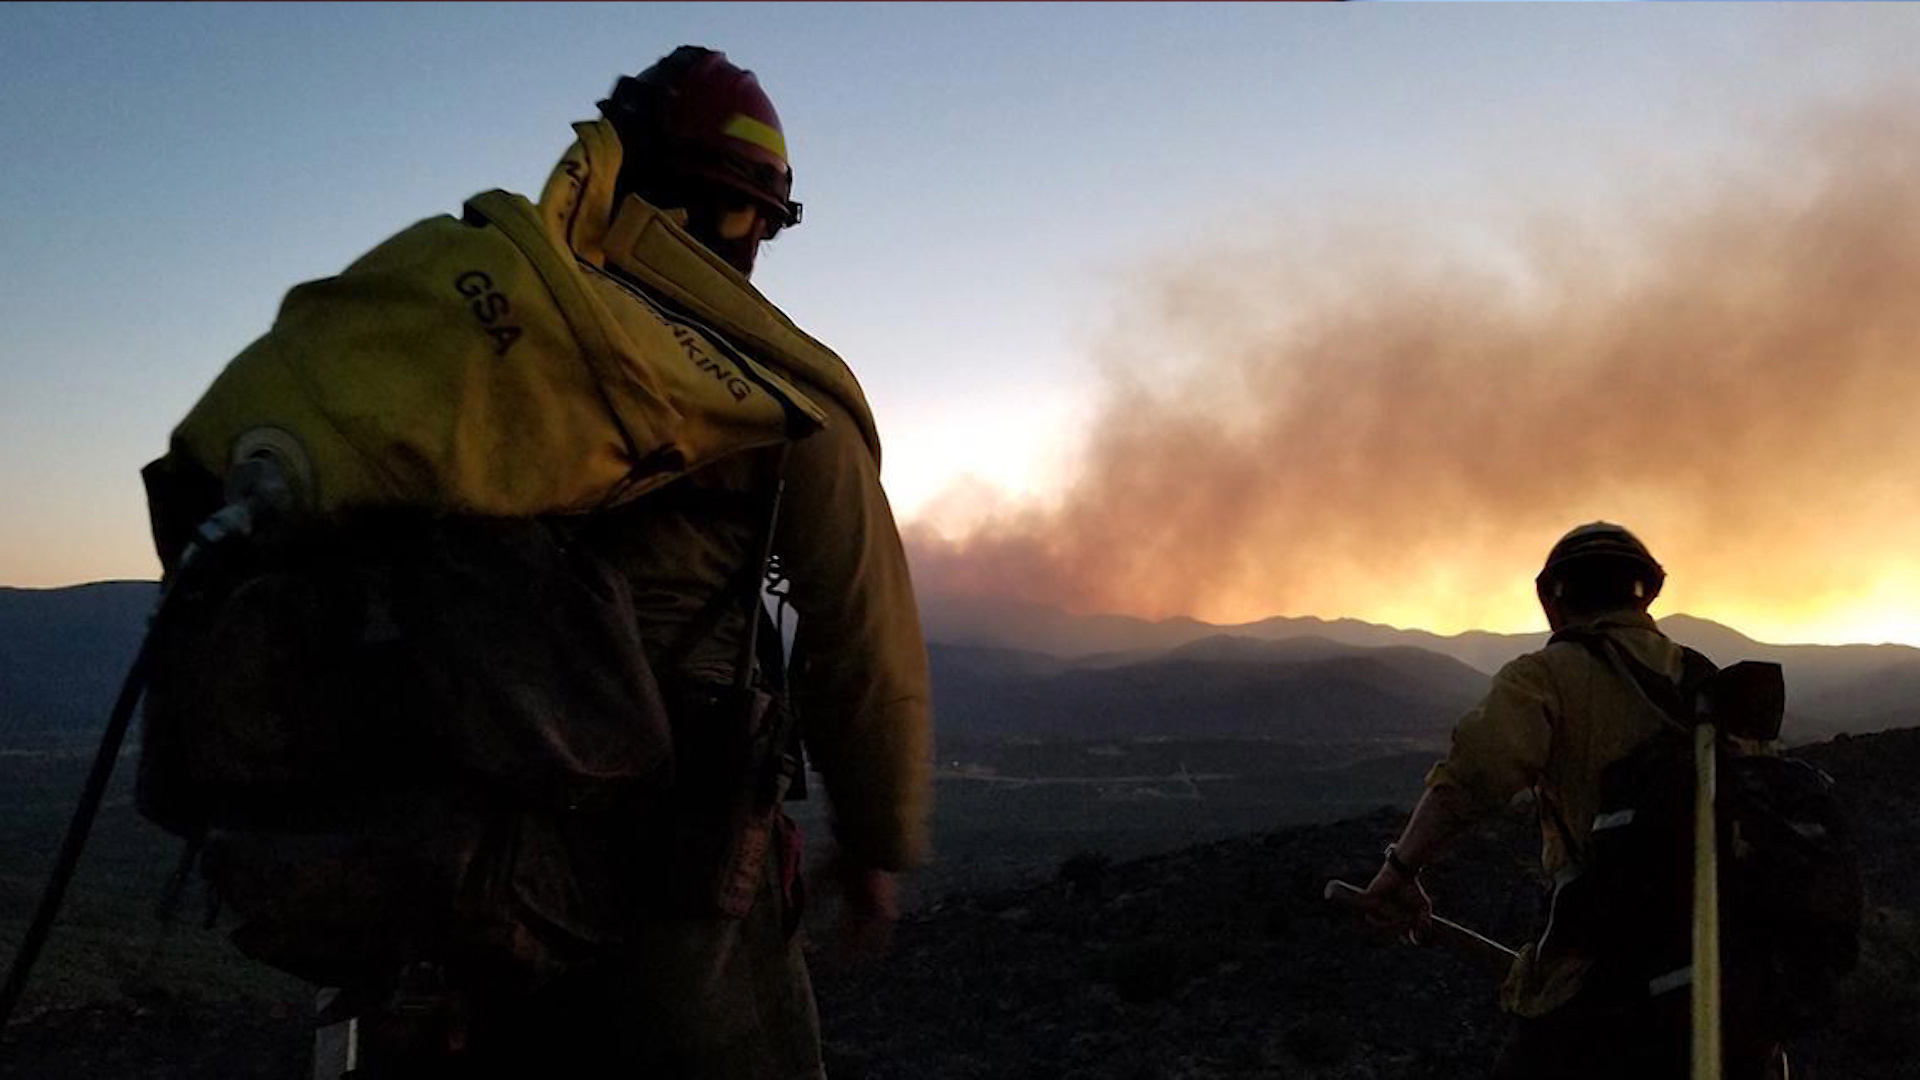 Wildland firefighters watch smoke from a wildfire.